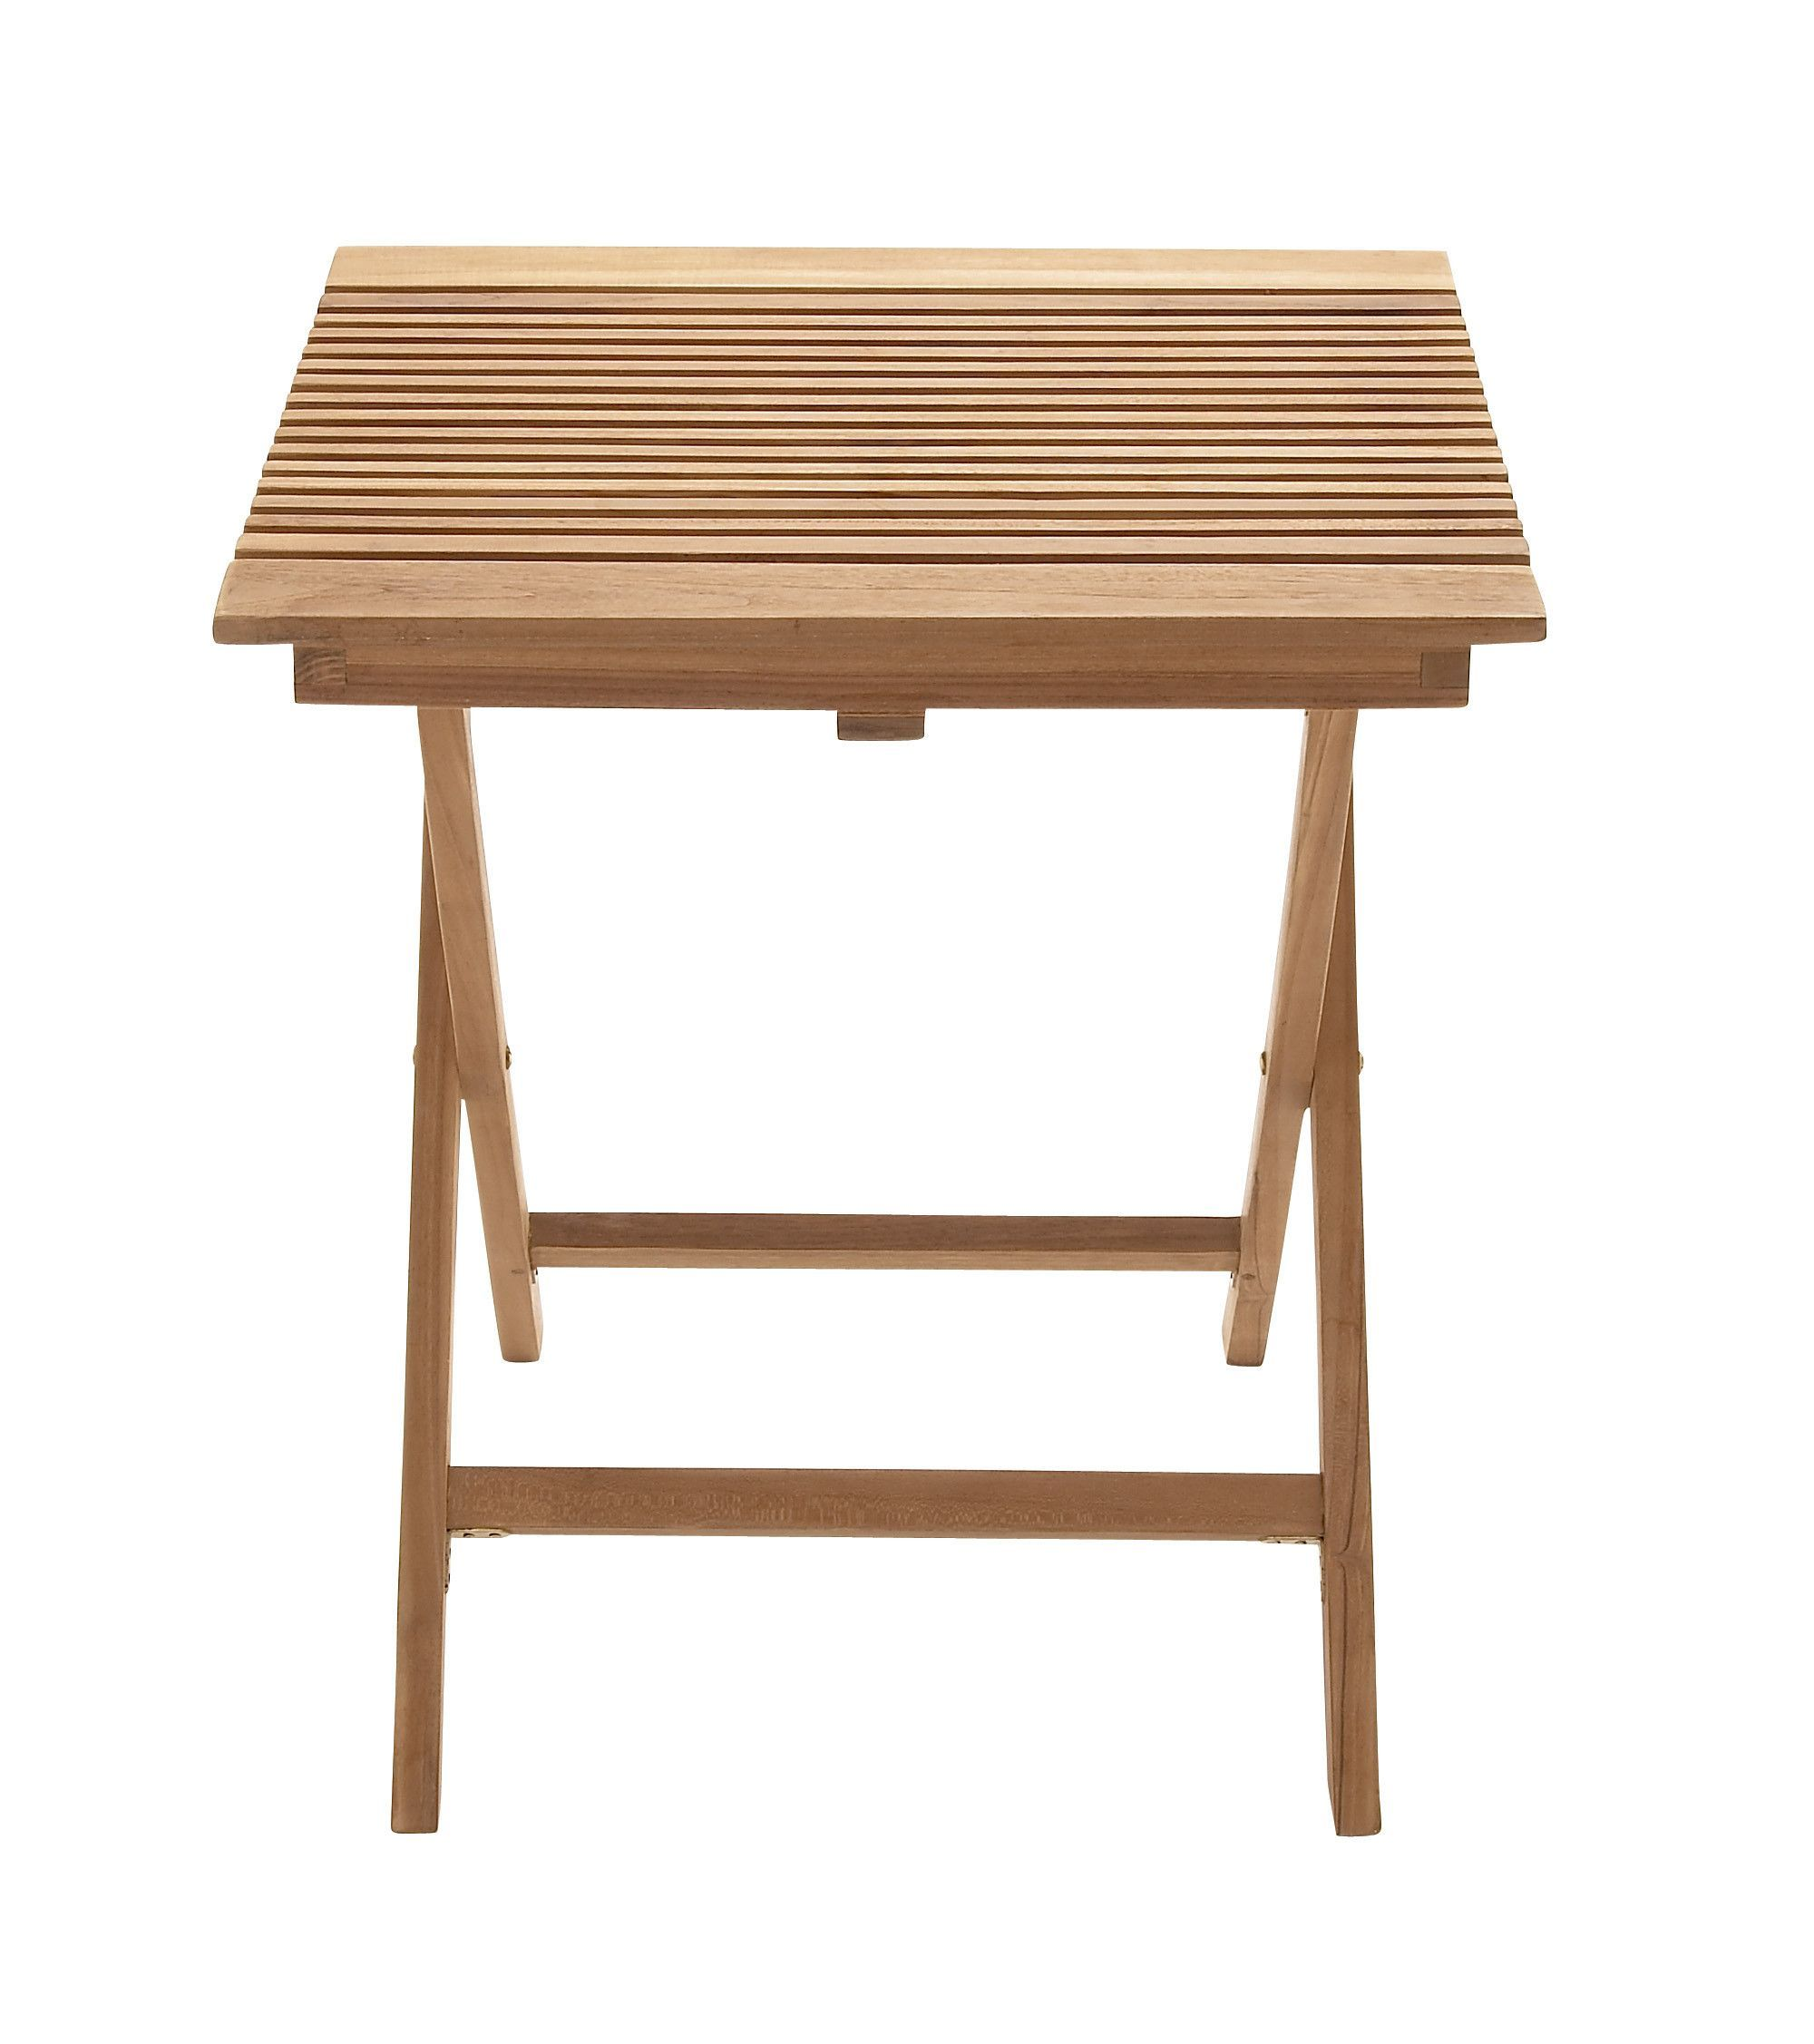 Portable And Useful Wood Teak Folding Table. To Make Optimum Use Of The  Spare Space